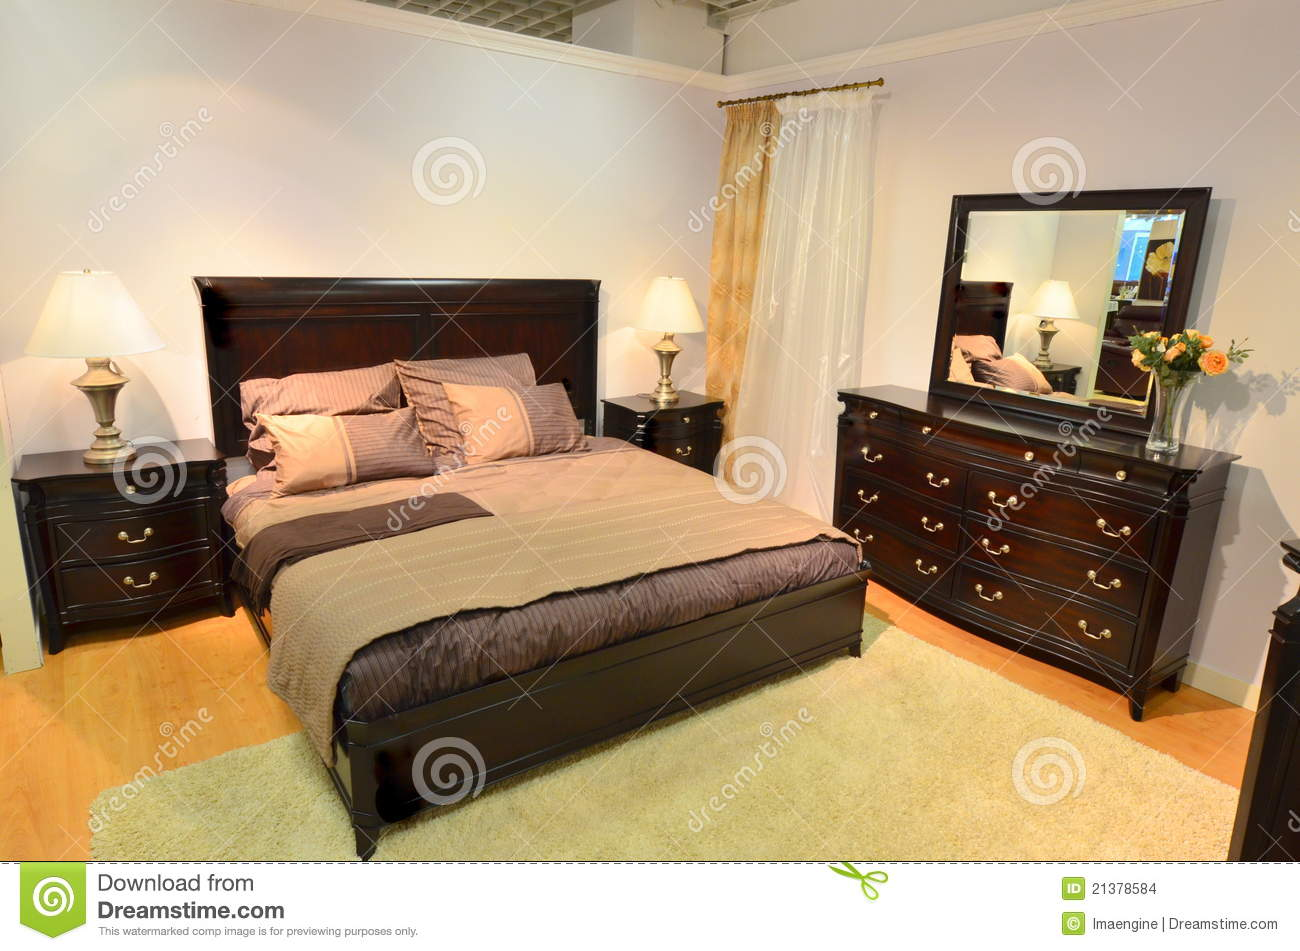 meubles en bois de chambre coucher classique images stock image 21378584. Black Bedroom Furniture Sets. Home Design Ideas